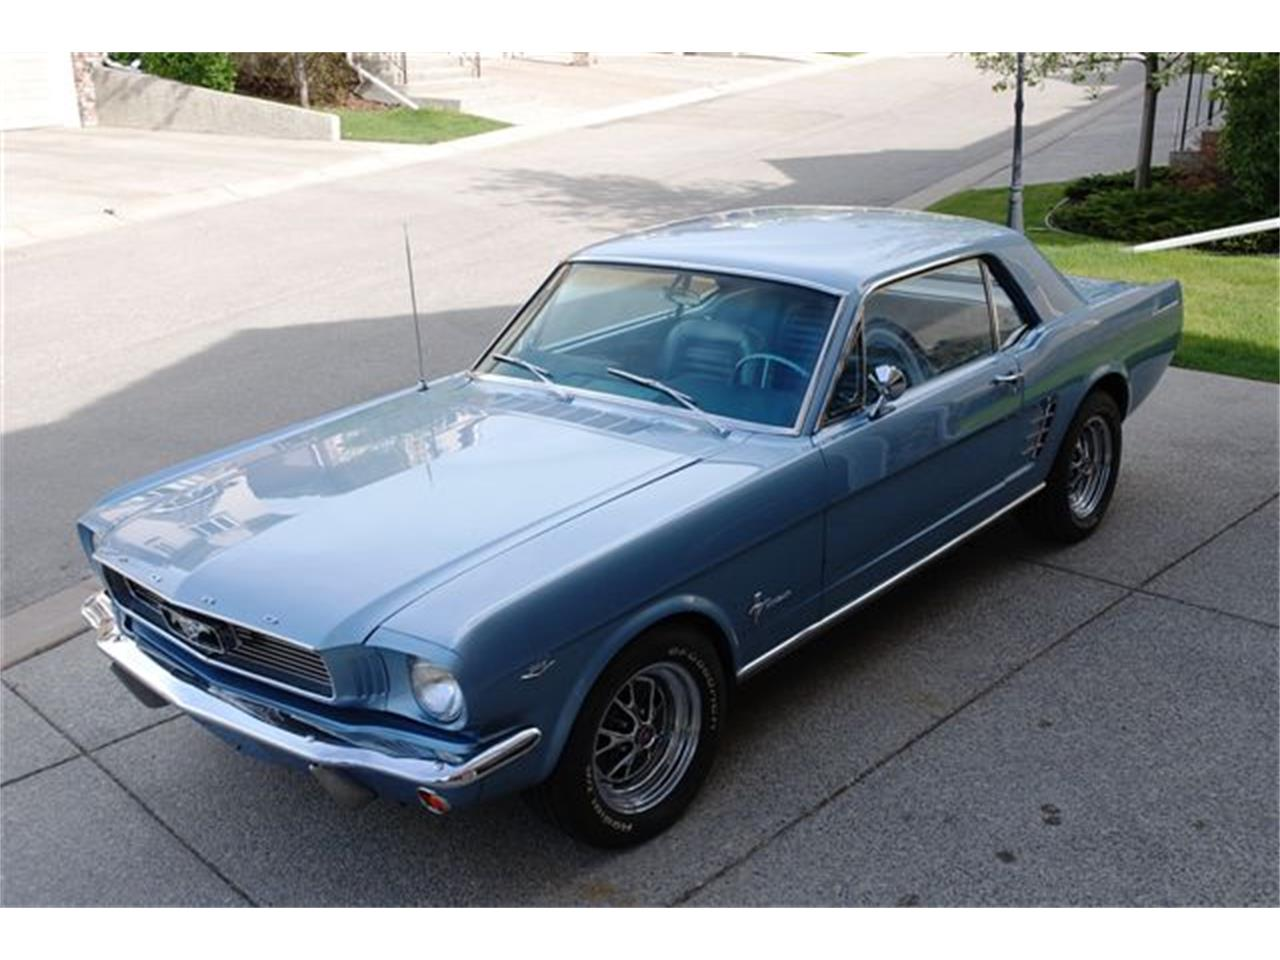 Large picture of 66 mustang located in calgary alberta lsuv